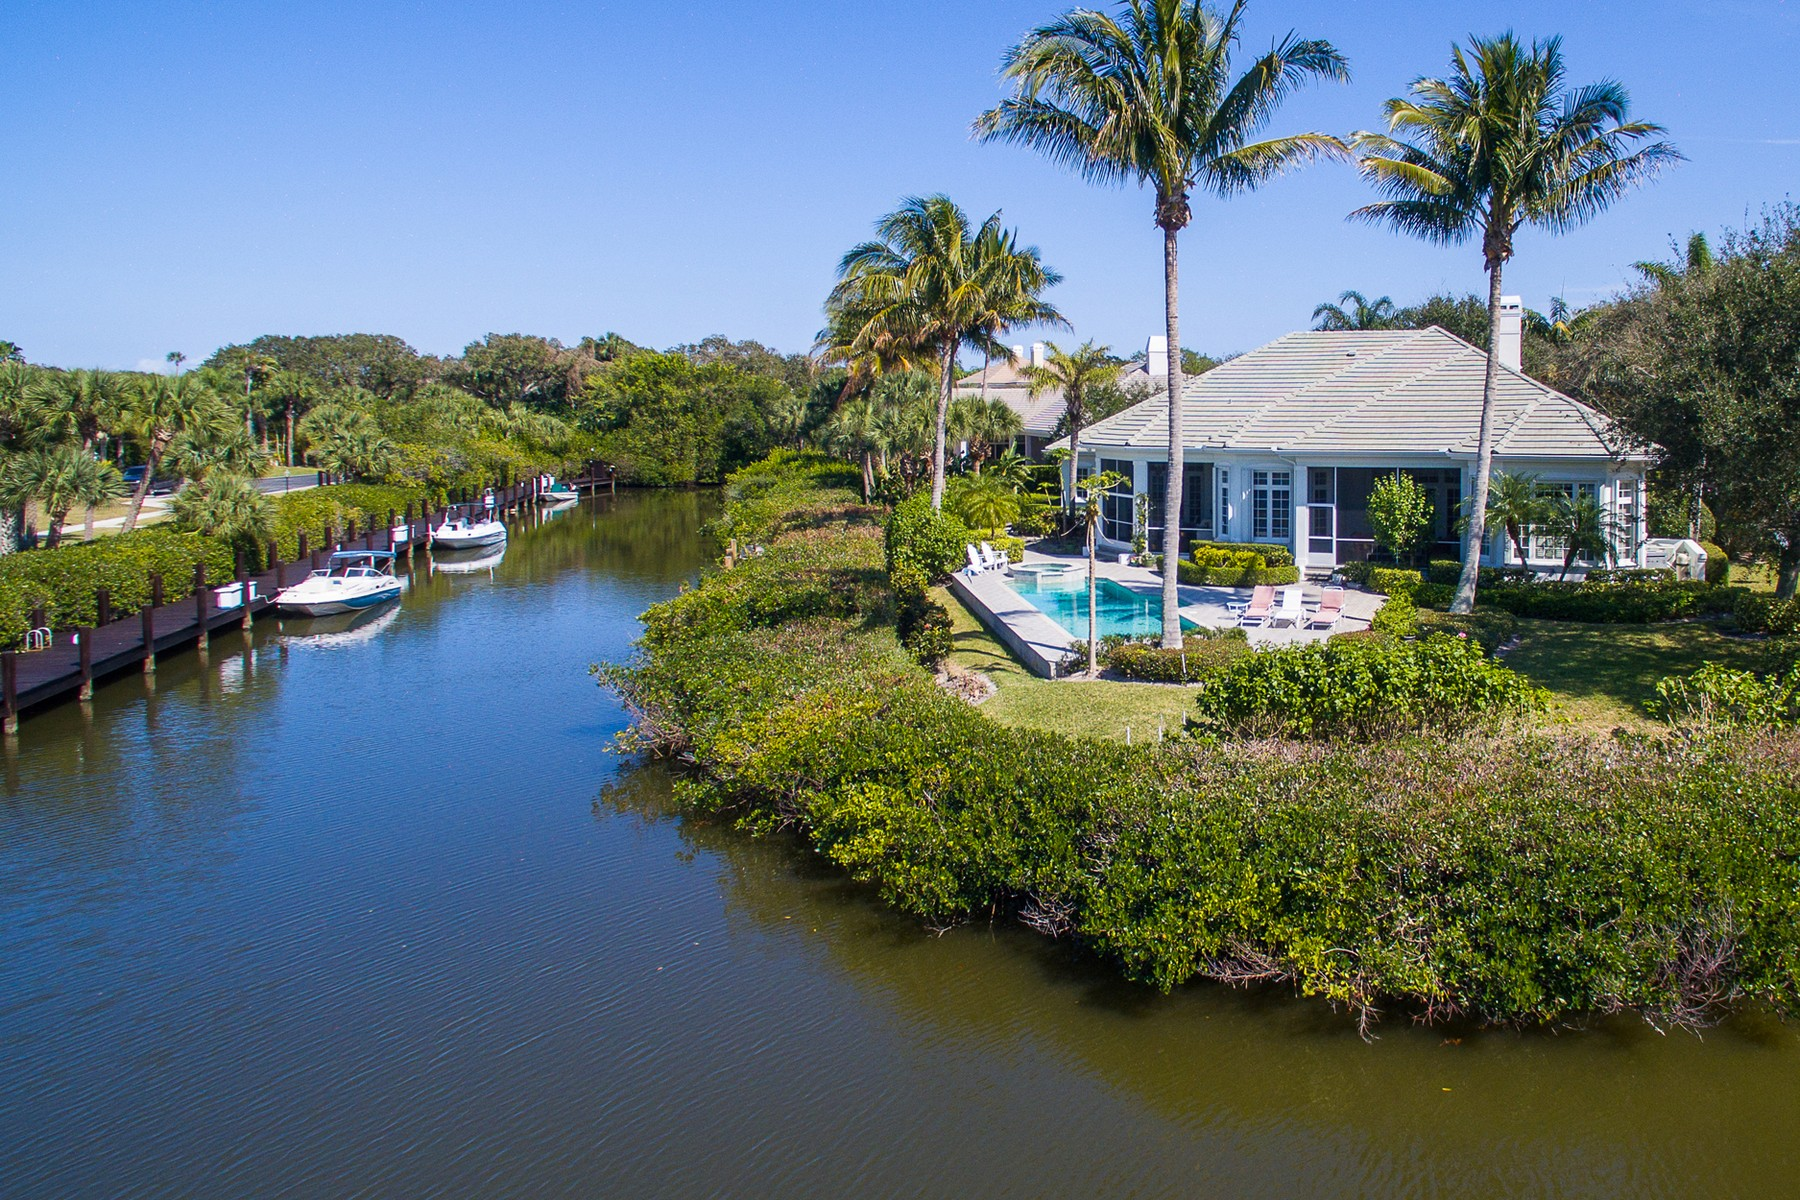 Single Family Home for Sale at Riverfront Showplace in The Estuary 125 Rivermist Way Vero Beach, Florida, 32963 United States